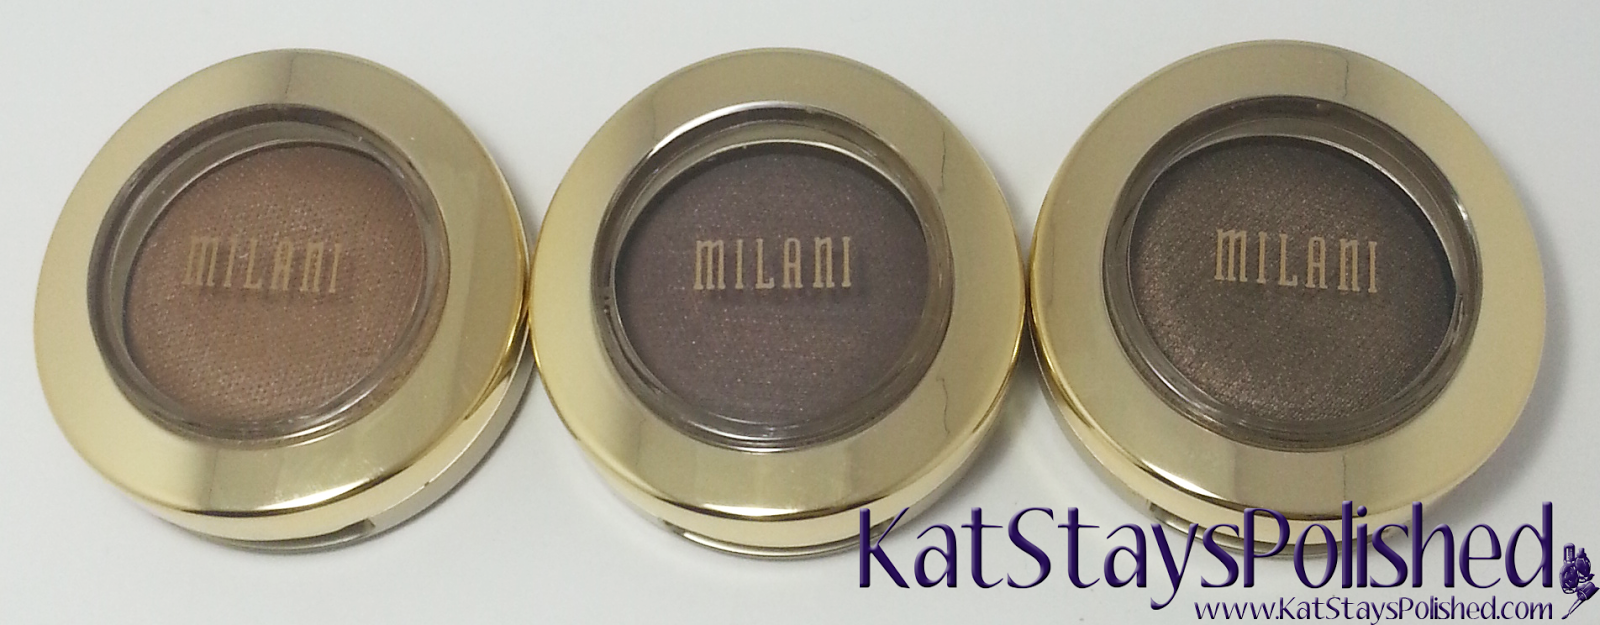 Milani Bella Eyes Gel Powder Eye Shadow - Caffe - Taupe - Espresso | Kat Stays Polished